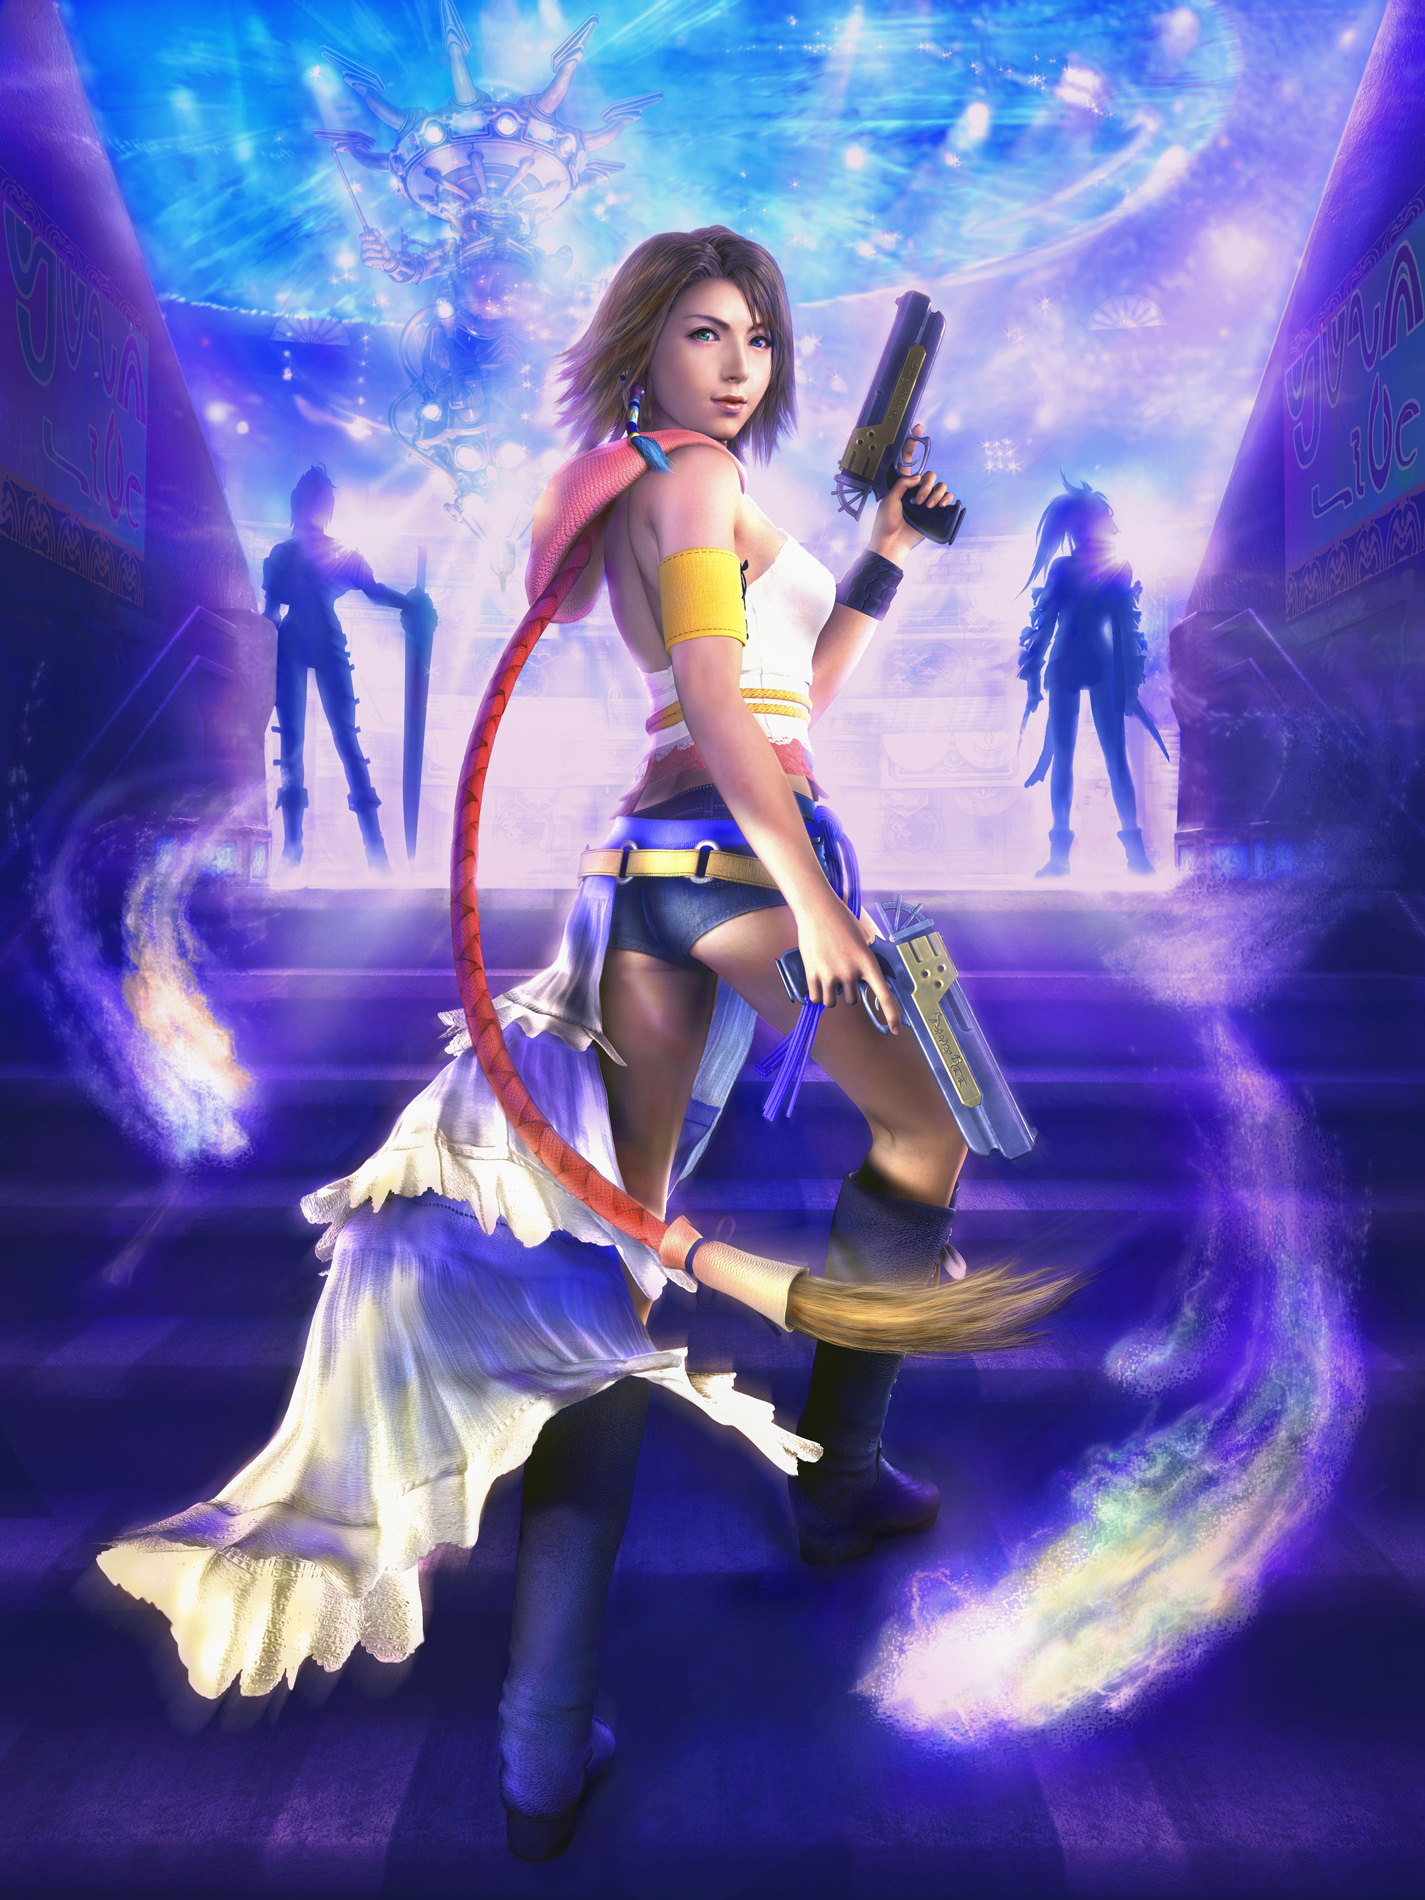 final fantasy x-2 images pictures from ffx-2 hd wallpaper and